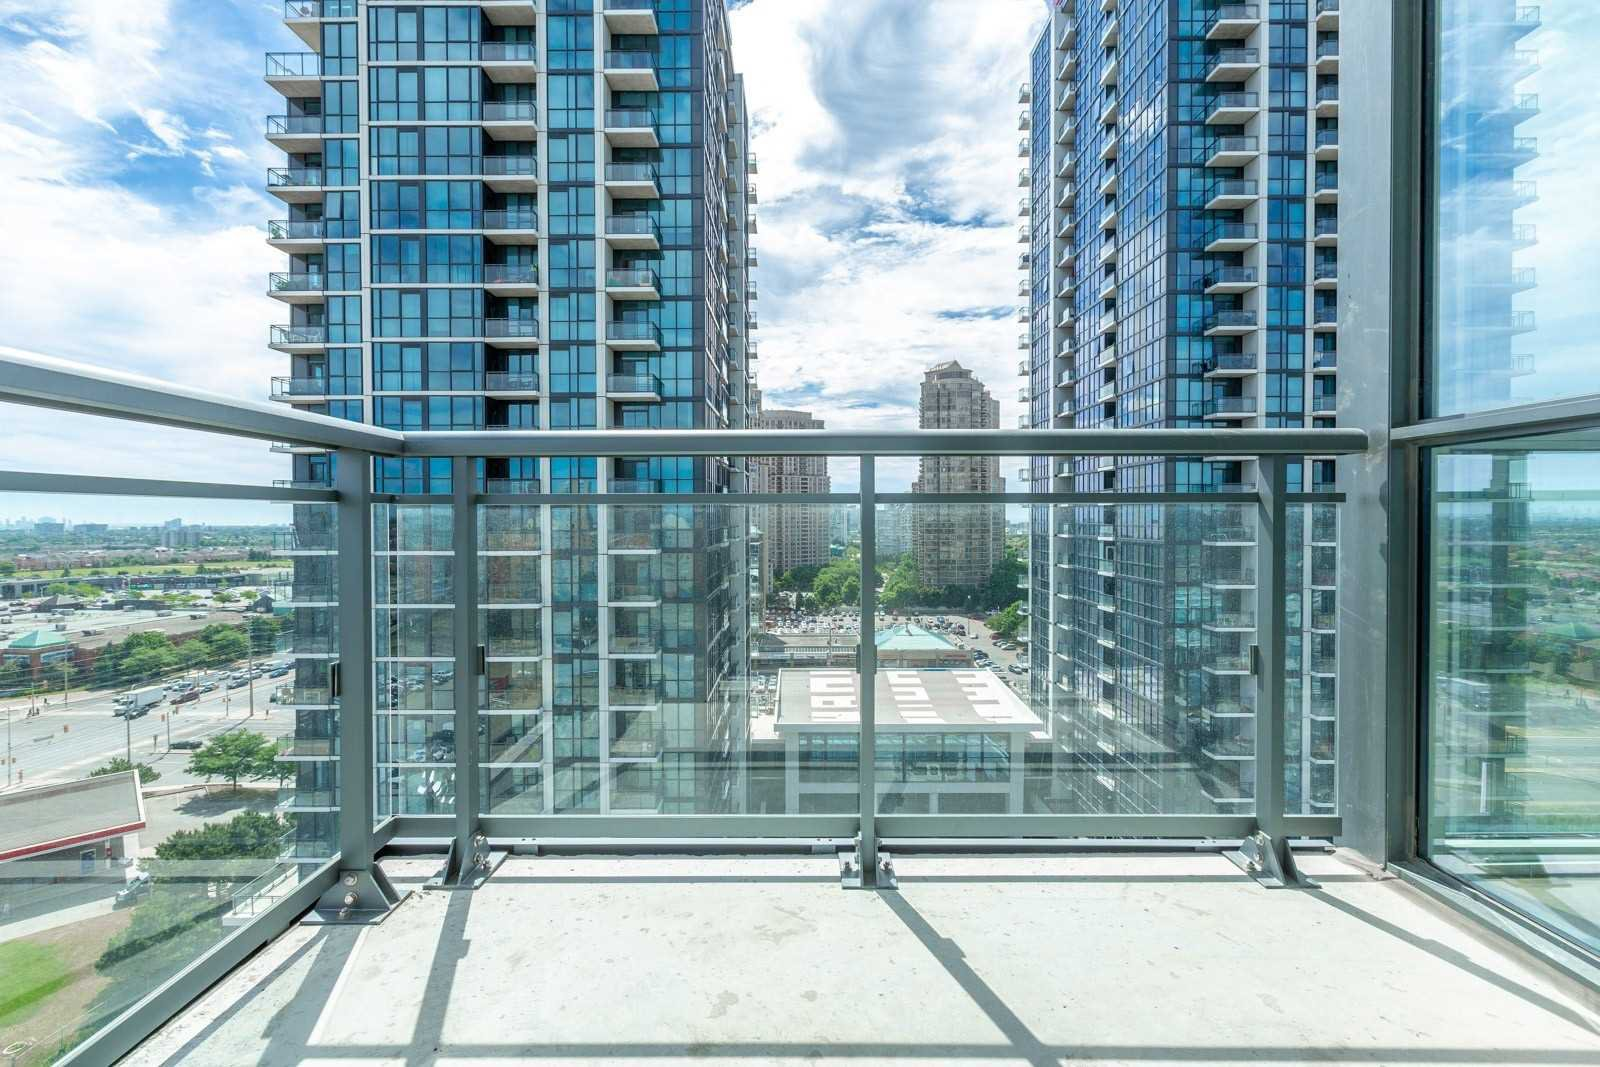 Photo 18: Photos: 1204 5025 Four Springs Avenue in Mississauga: Hurontario Condo for lease : MLS®# W4582092